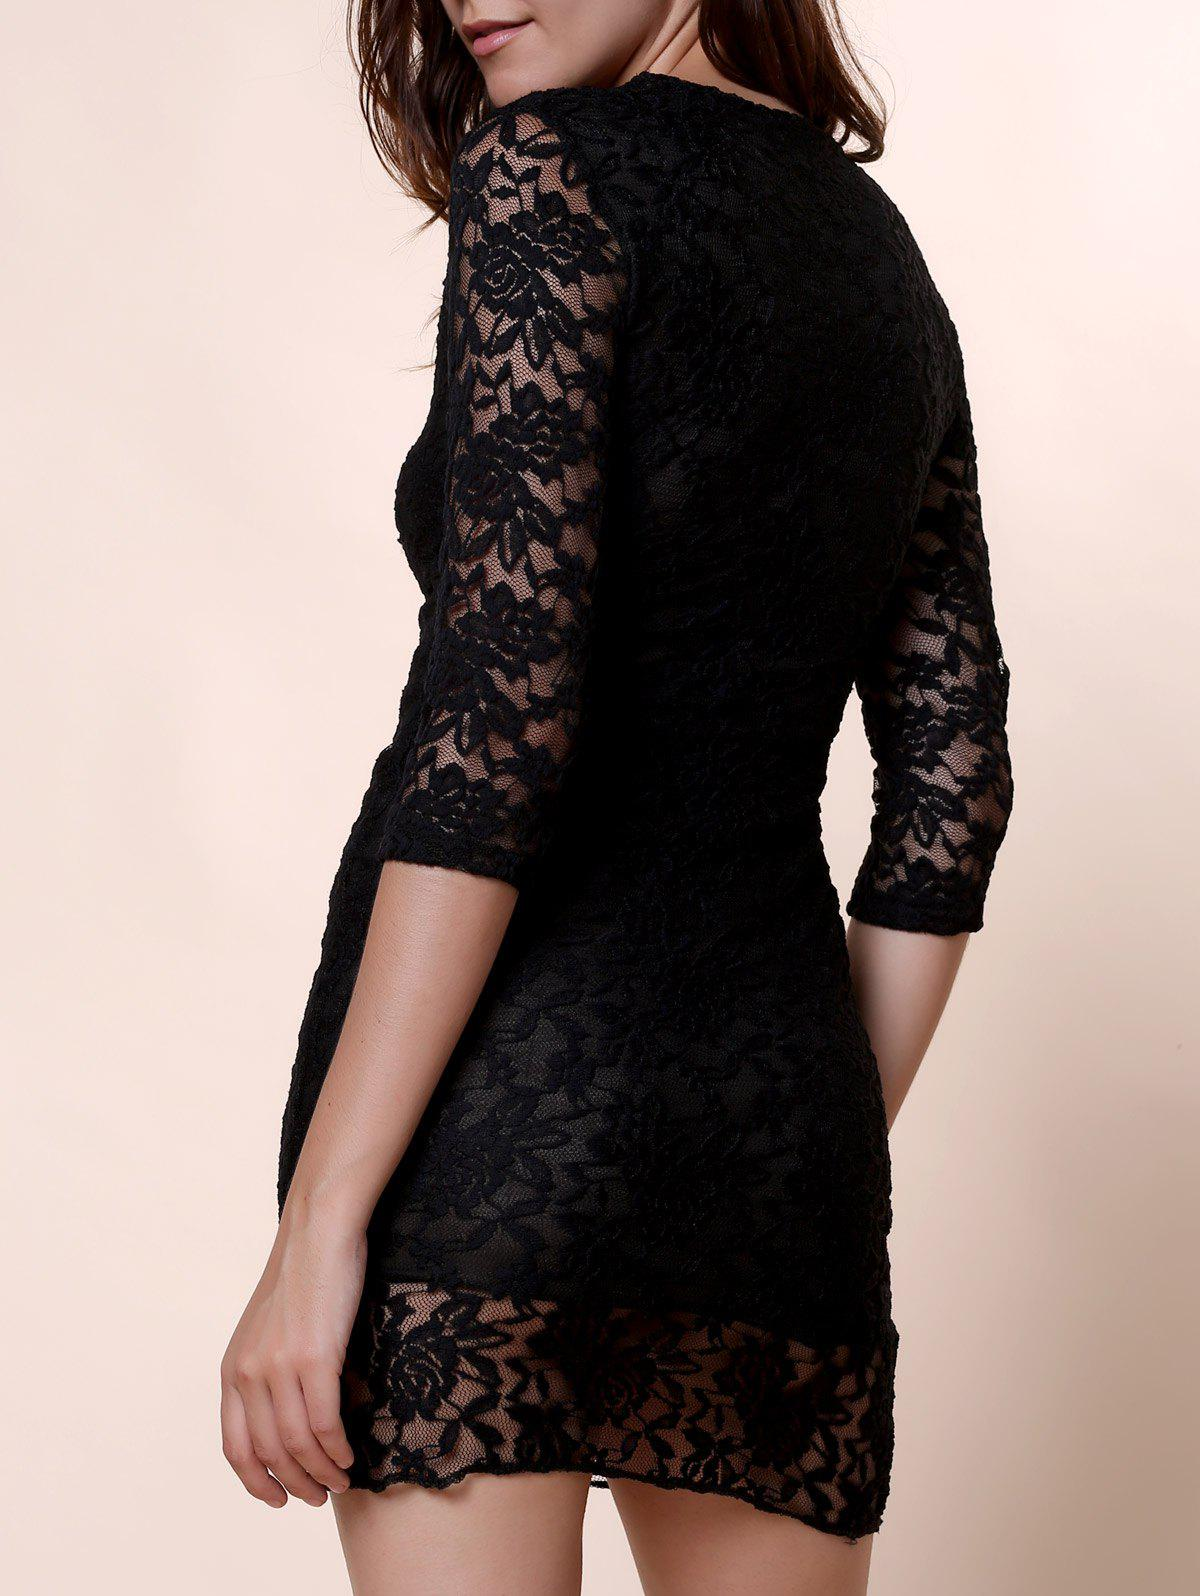 Sexy Plunging Neck 3/4 Sleeve Solid Color See-Through Womens Lace DressWomen<br><br><br>Size: ONE SIZE(FIT SIZE XS TO M)<br>Color: BLACK